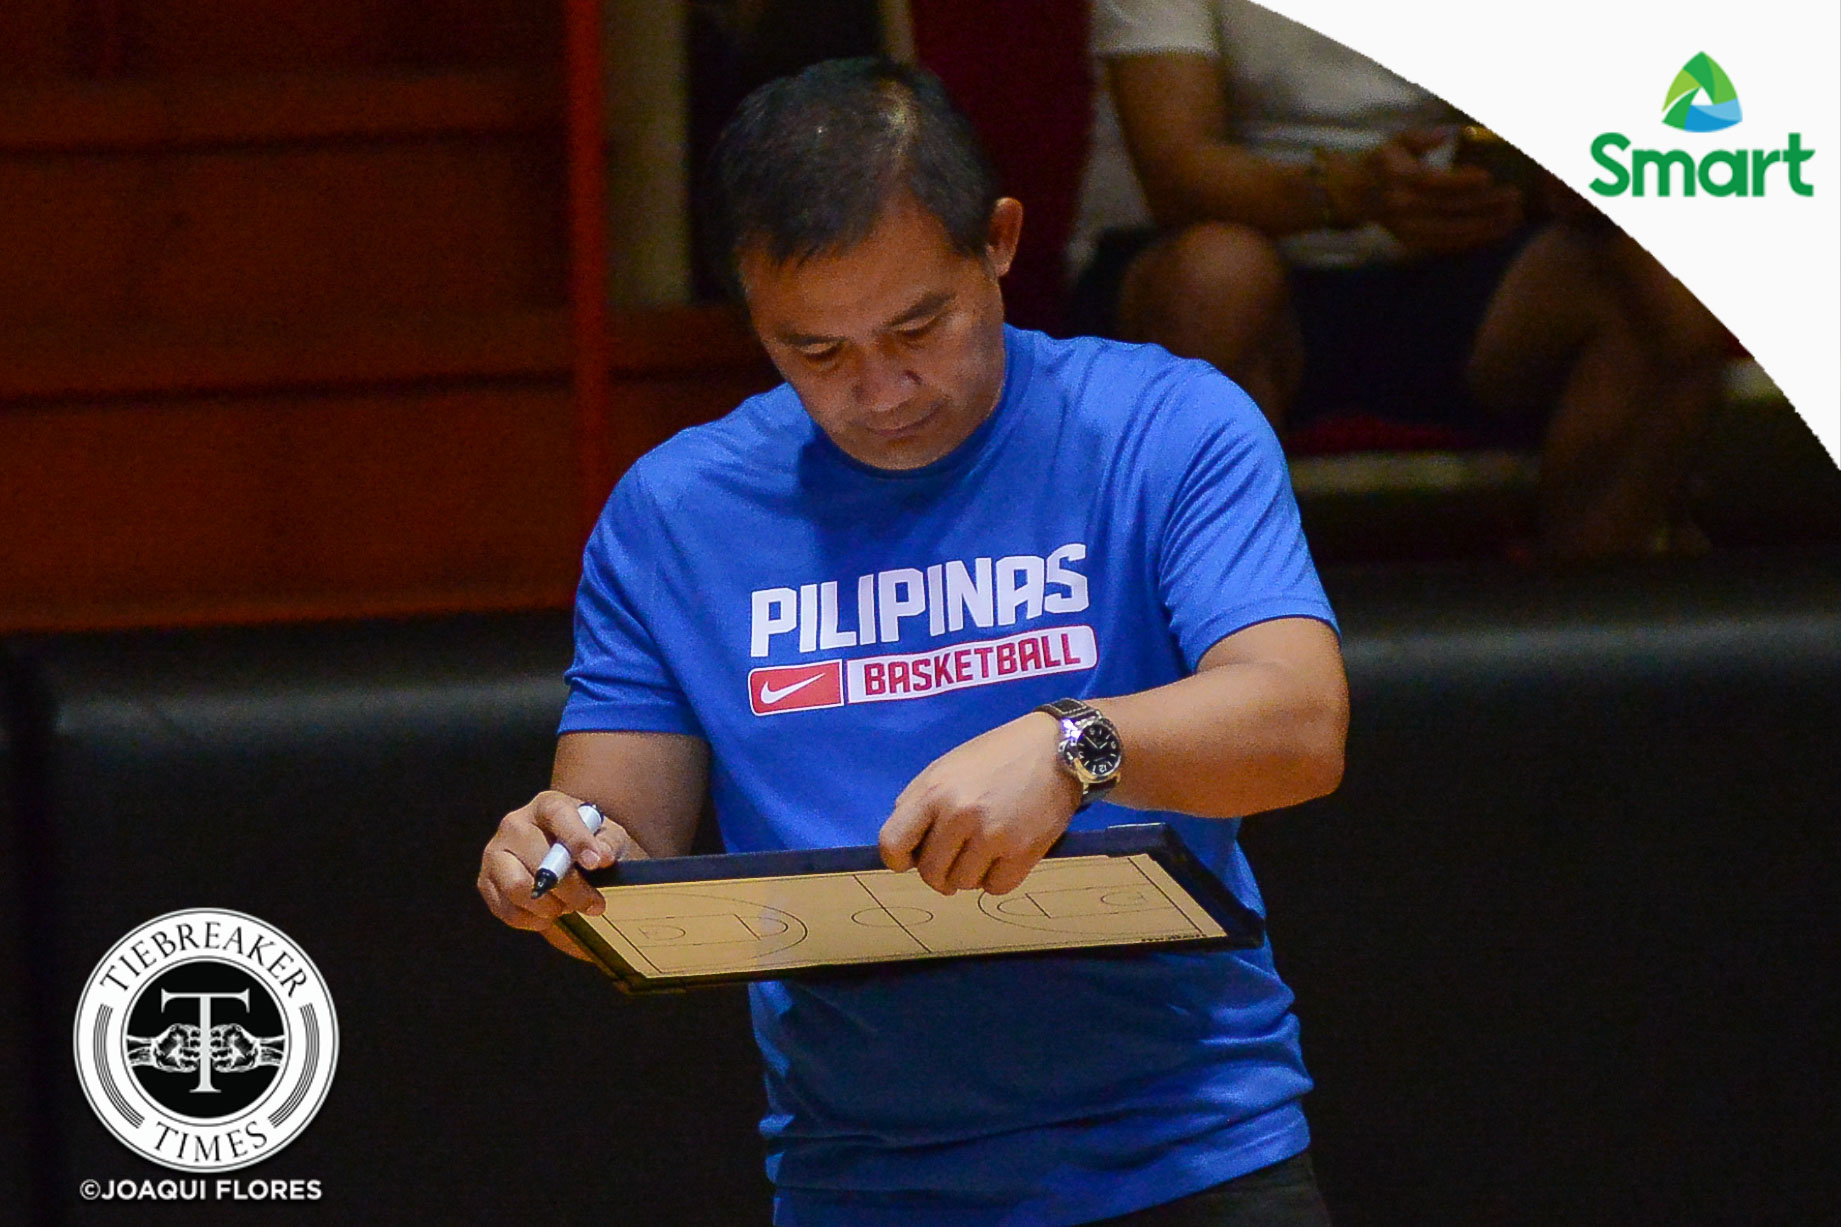 Philippine Sports News - Tiebreaker Times Chot Reyes defends decision to field same SMART Gilas 12 against Chinese-Taipei 2019 FIBA World Cup Qualifiers Basketball Gilas Pilipinas News  Chot Reyes Chinese-Taipei (Basketball) 2019 FIBA World Cup Qualifiers Group B